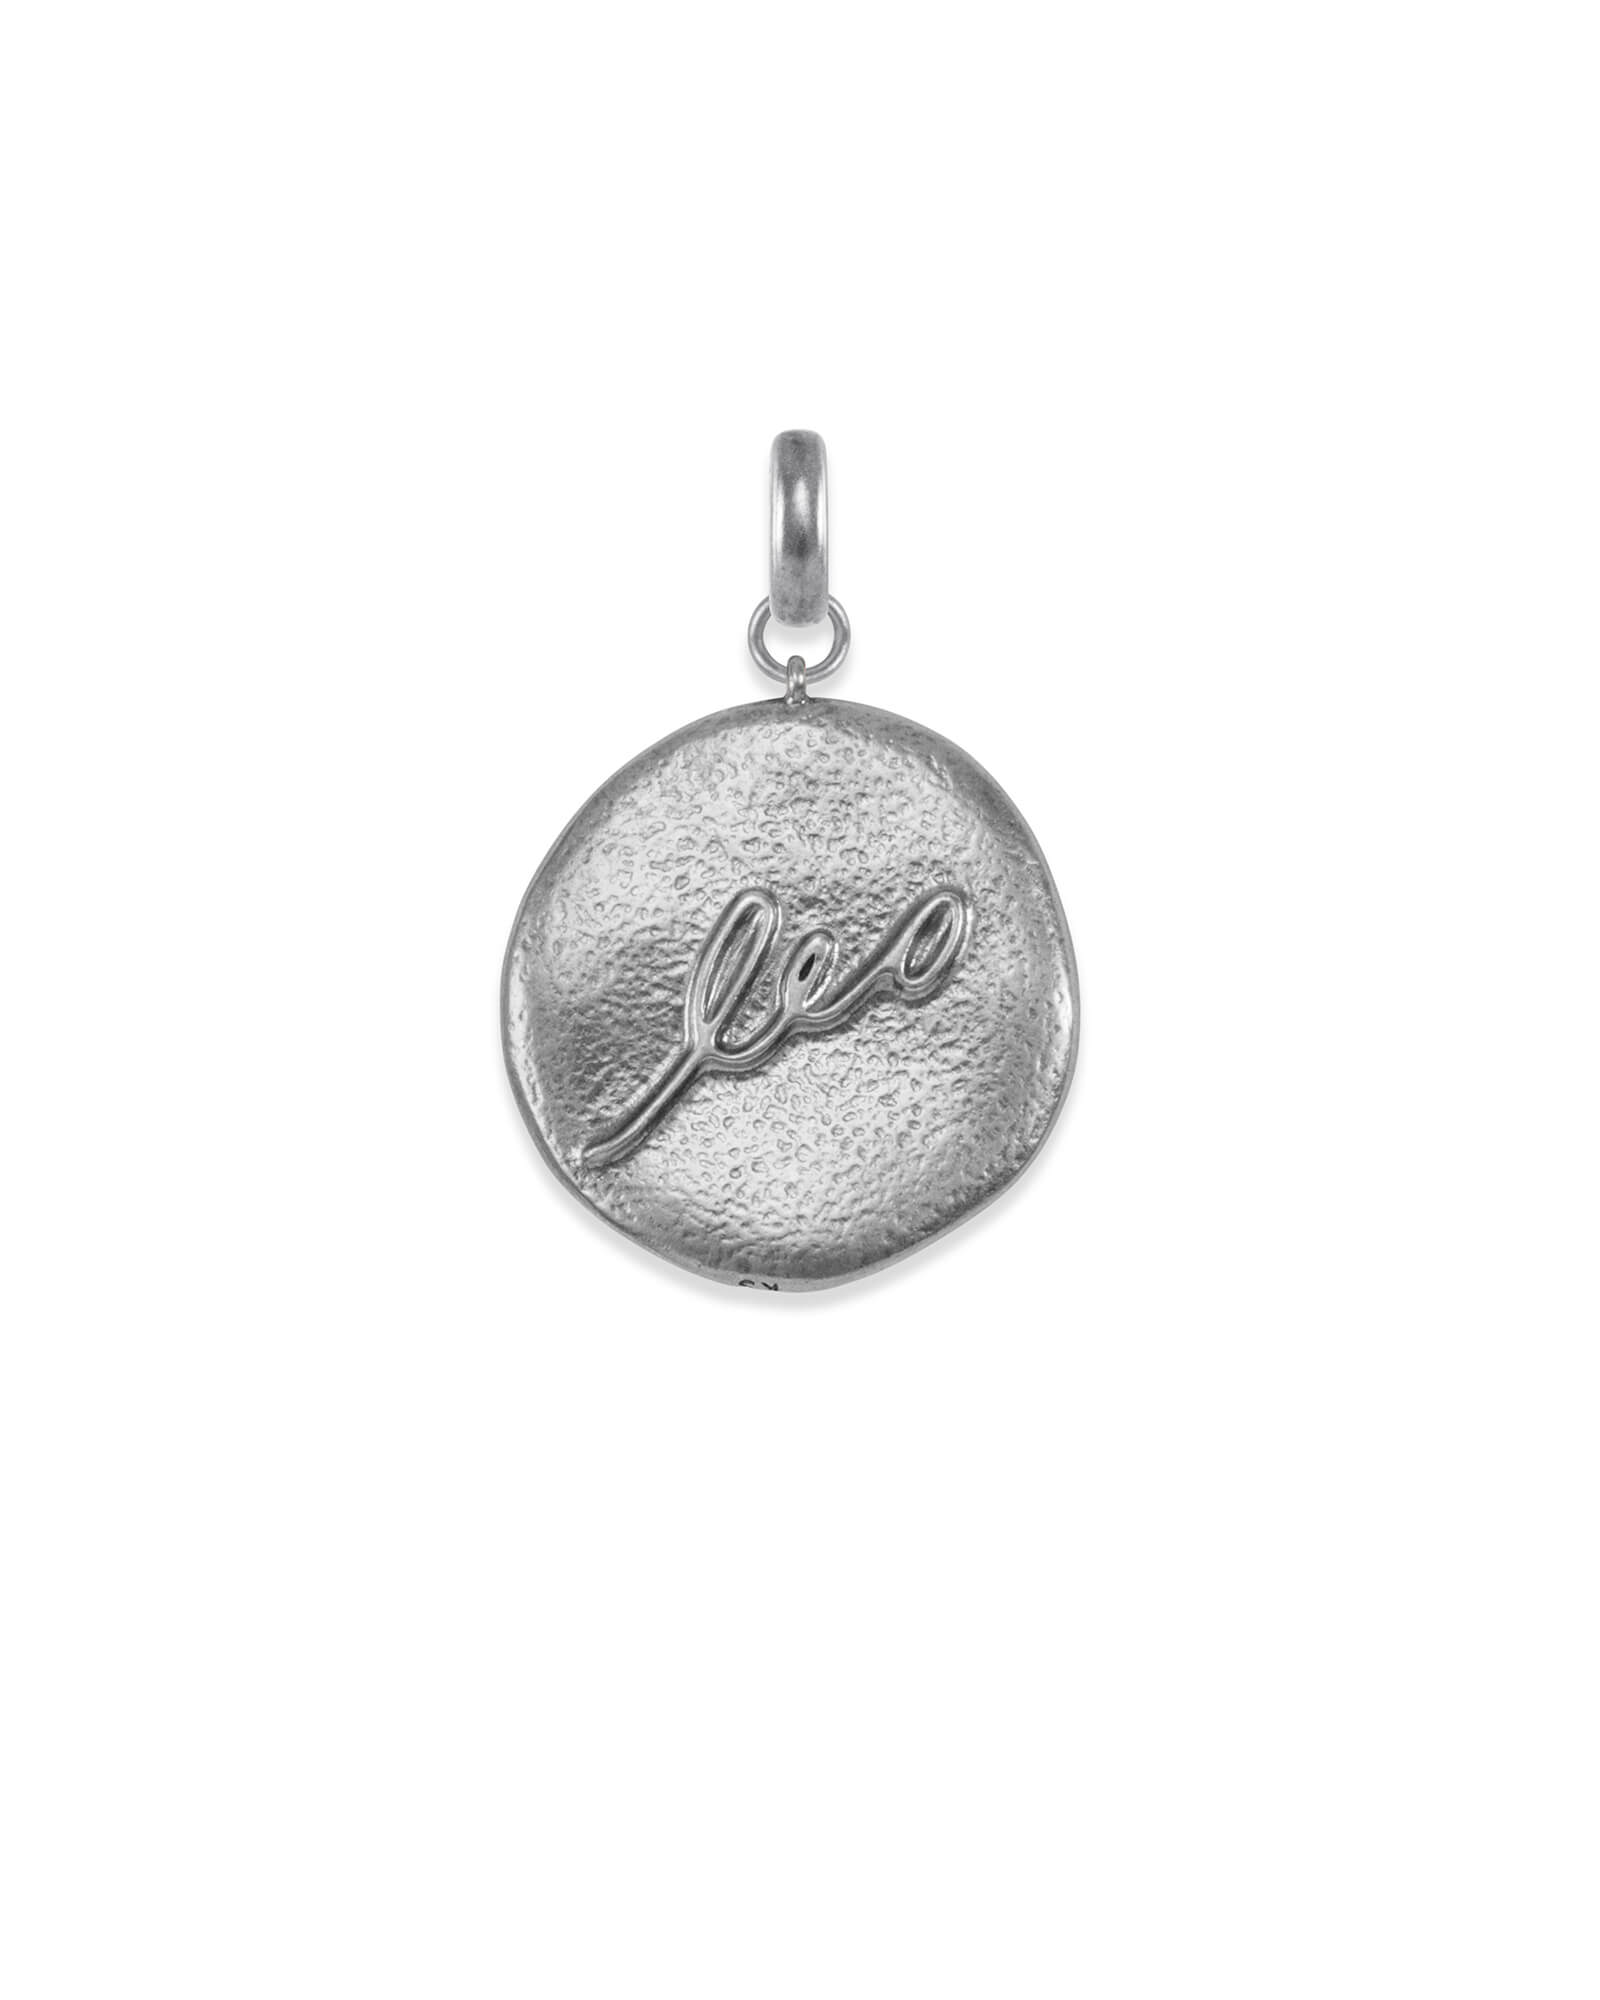 Leo Coin Charm in Vintage Silver